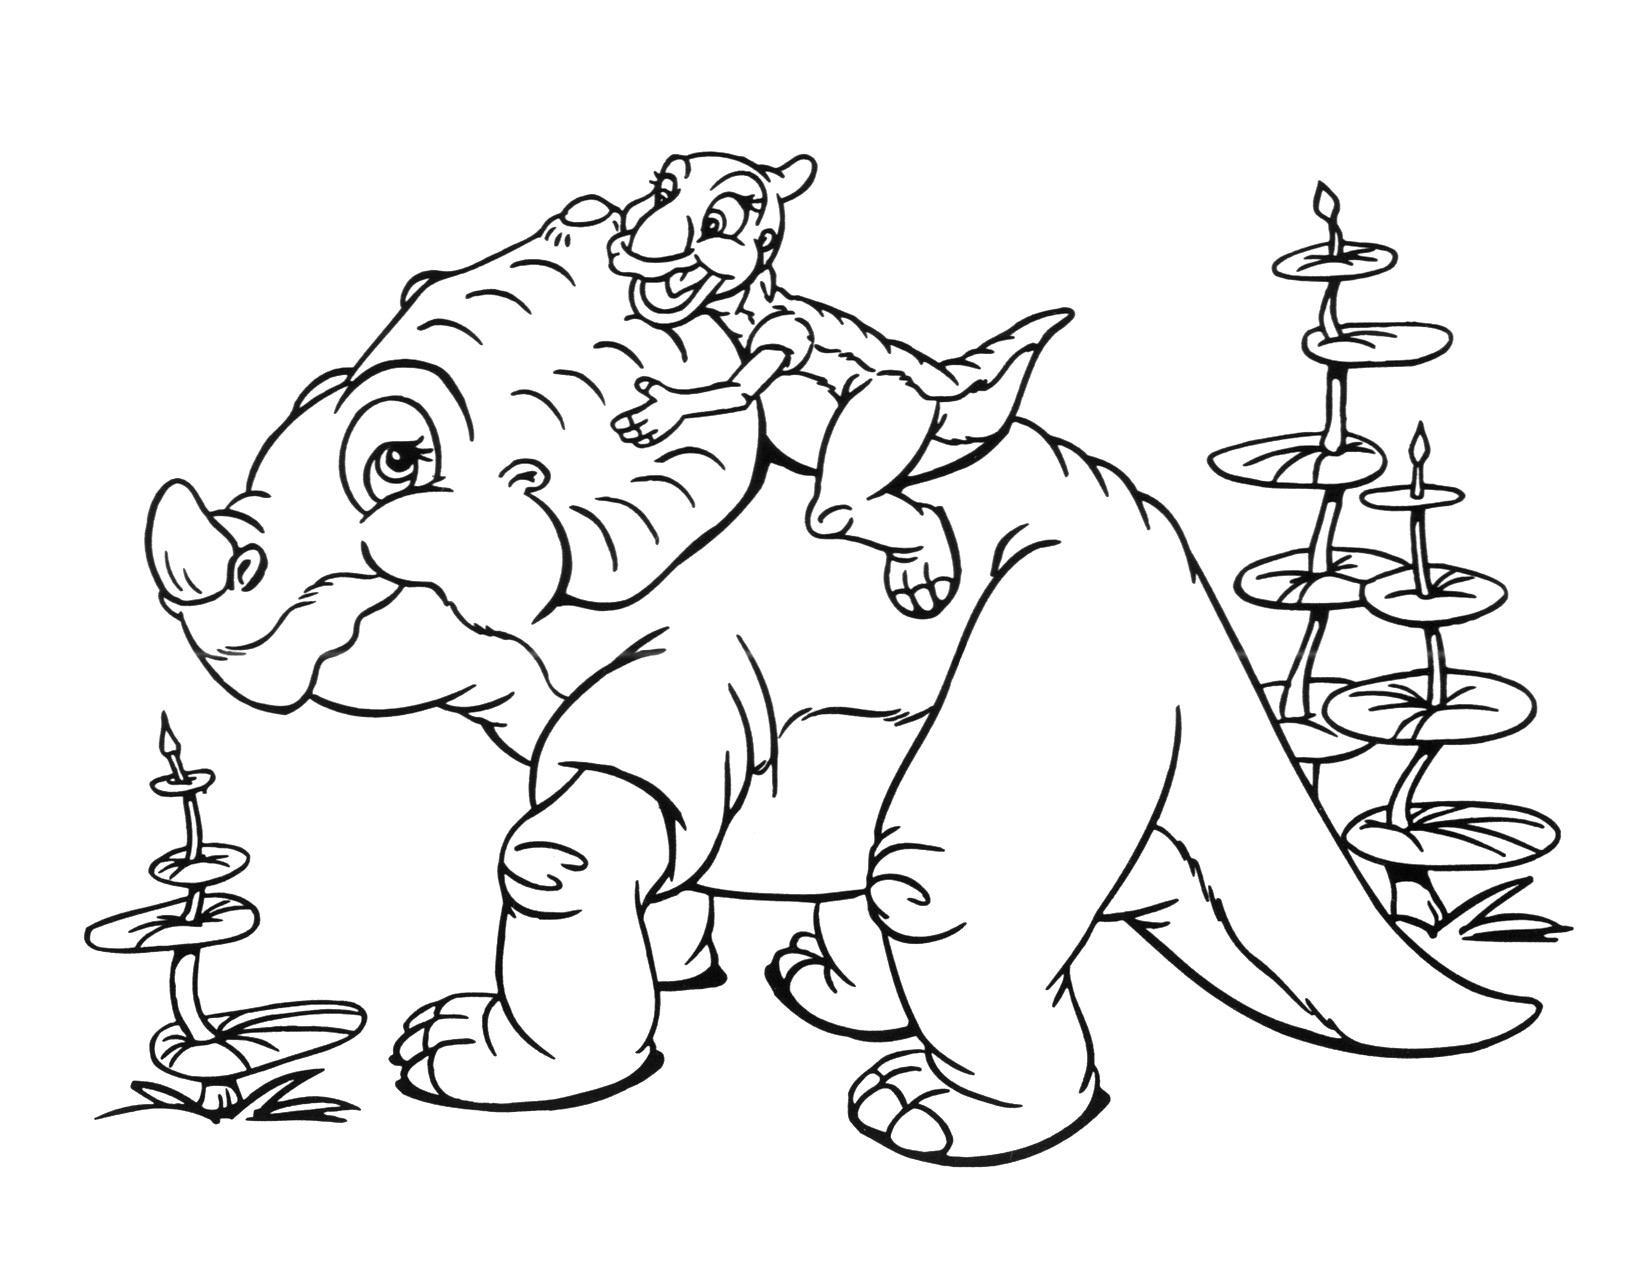 Letter J Coloring Page Coloring Pages Animals Druckbare Frbung Printable Letter J Coloring